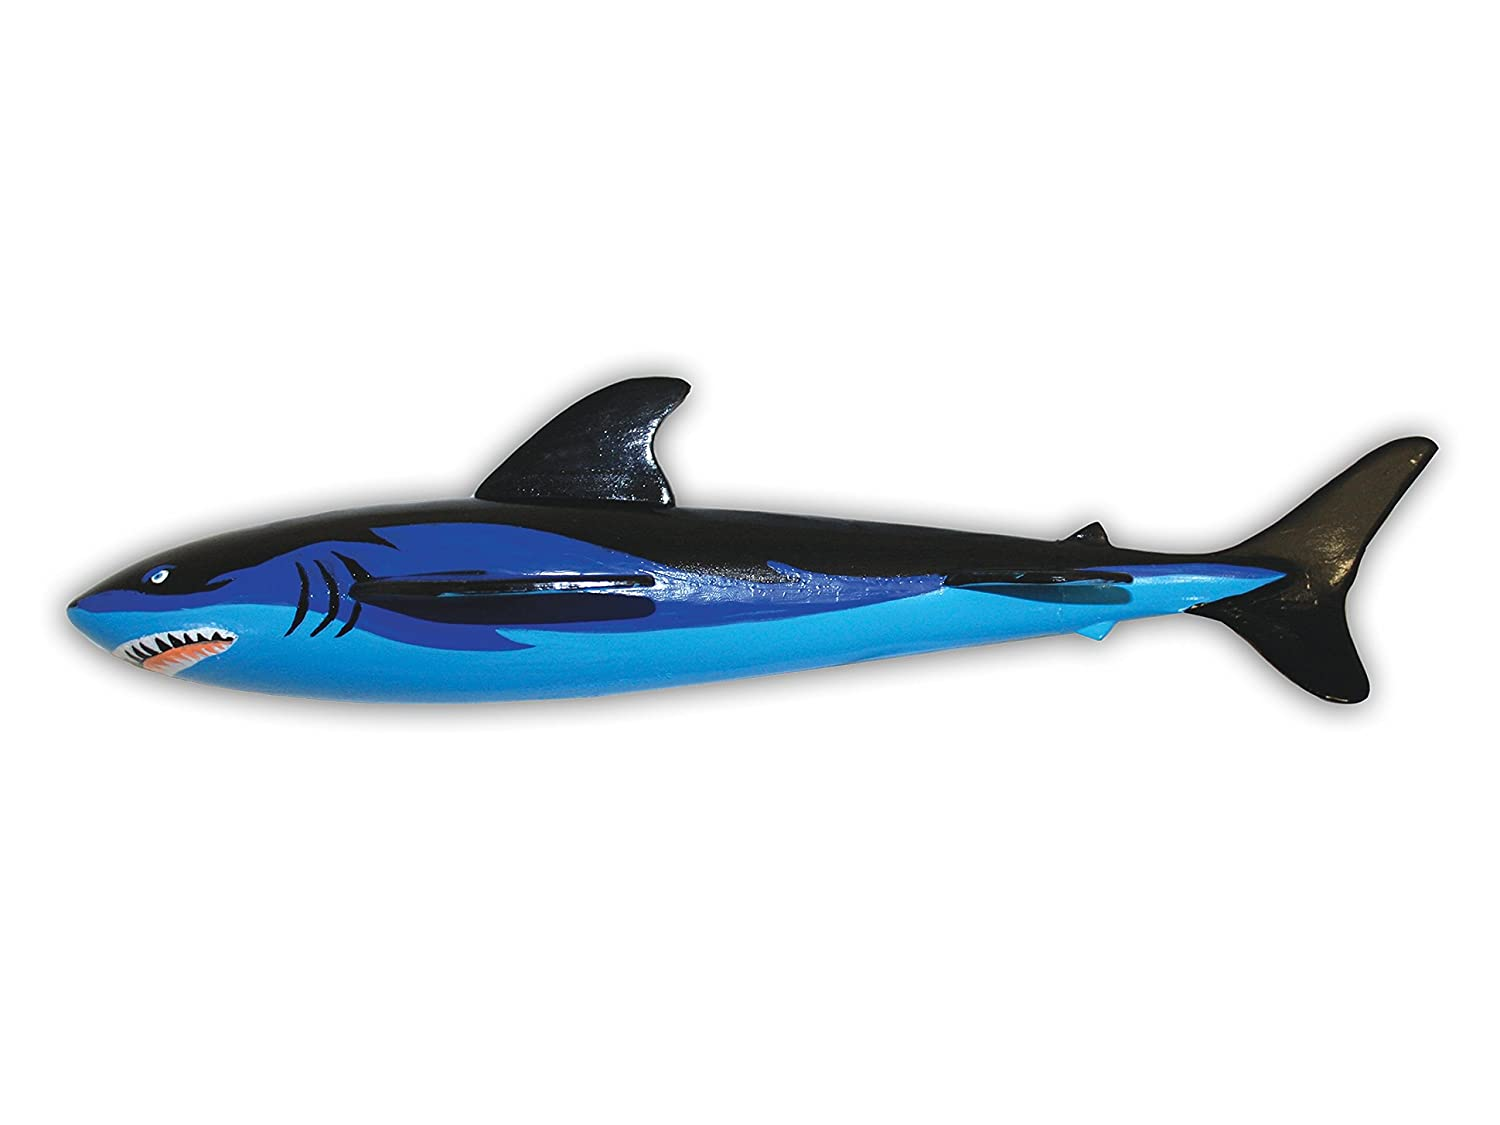 SwimWays Dive 'N Glide Shark Pool Toy